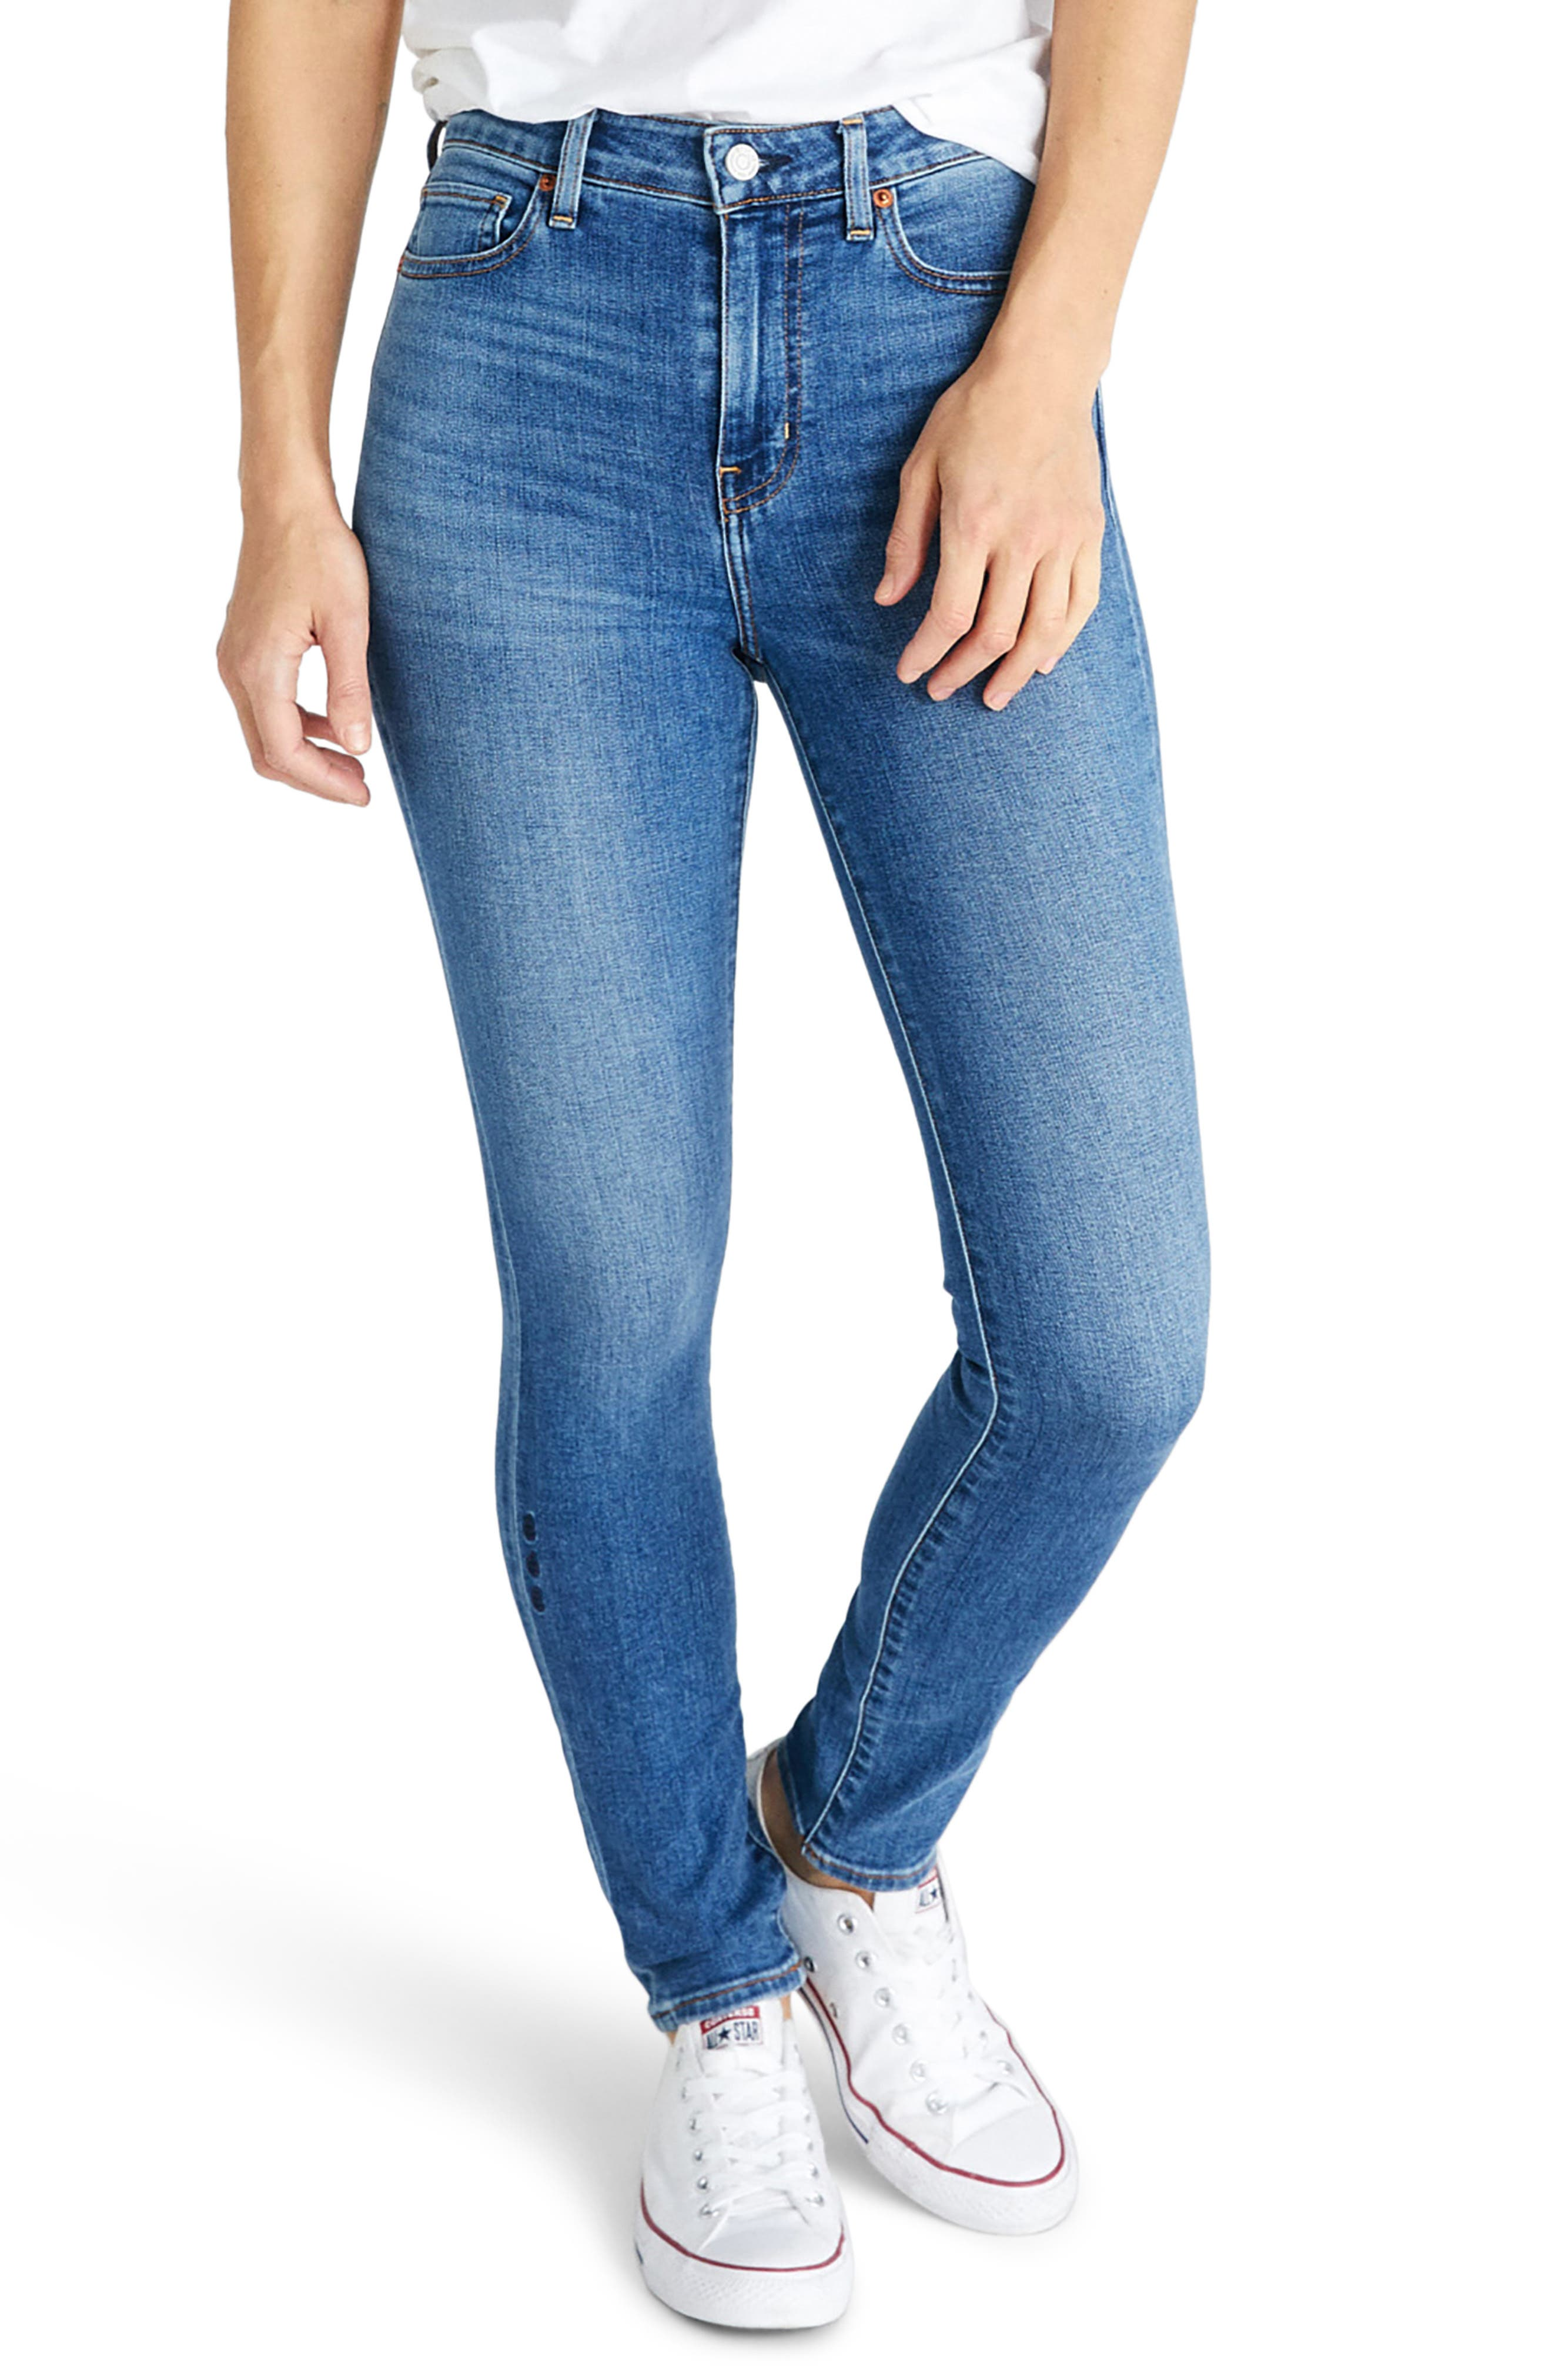 Image of ETICA Giselle Exposed Patch Pocket Skinny Jeans